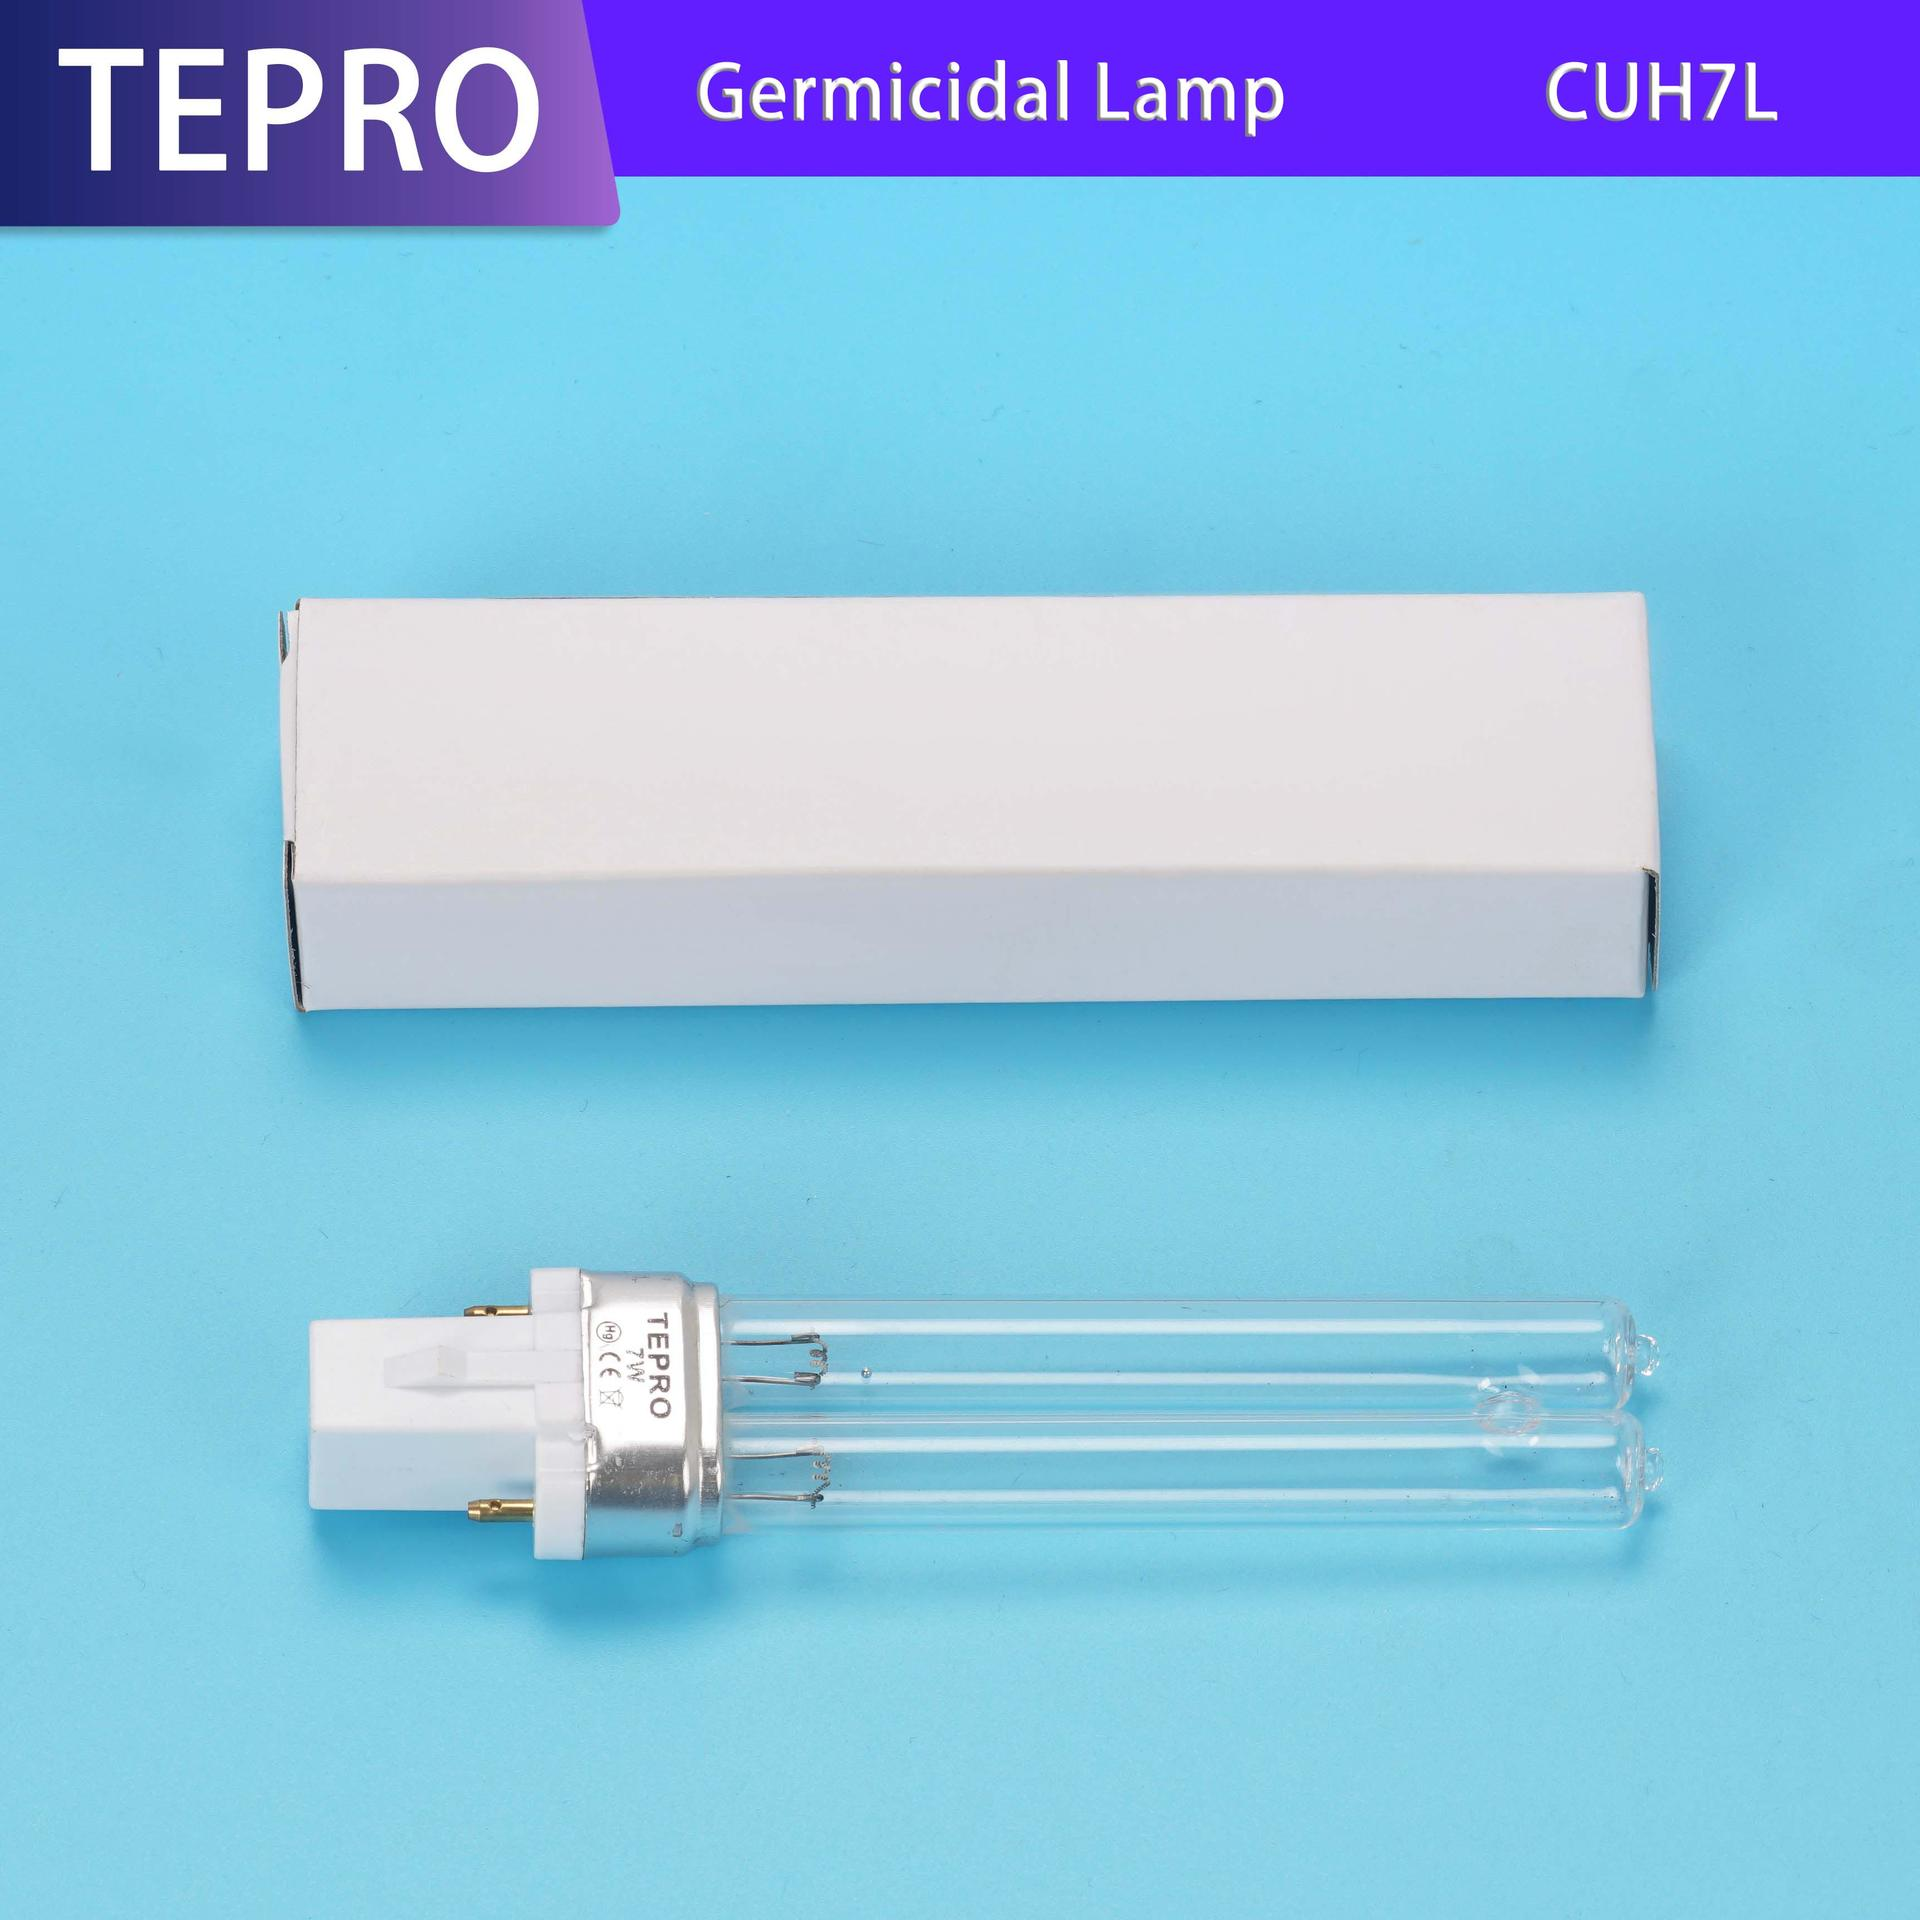 12mm Uv Germicidal Lamp H Type CUH7L Manufacturers